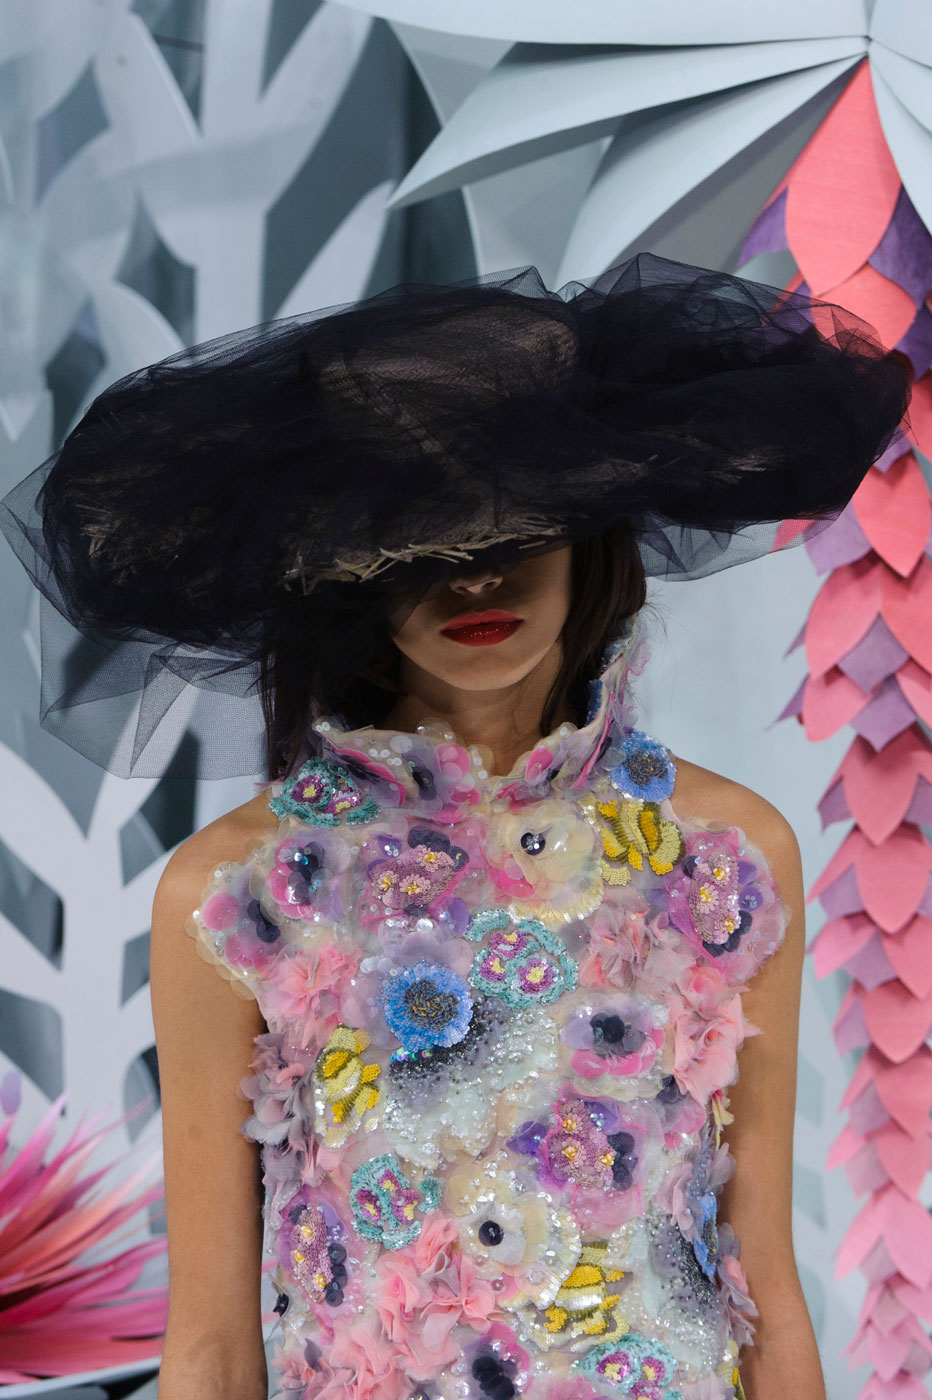 Chanel-fashion-runway-show-close-ups-haute-couture-paris-spring-summer-2015-the-impression-123